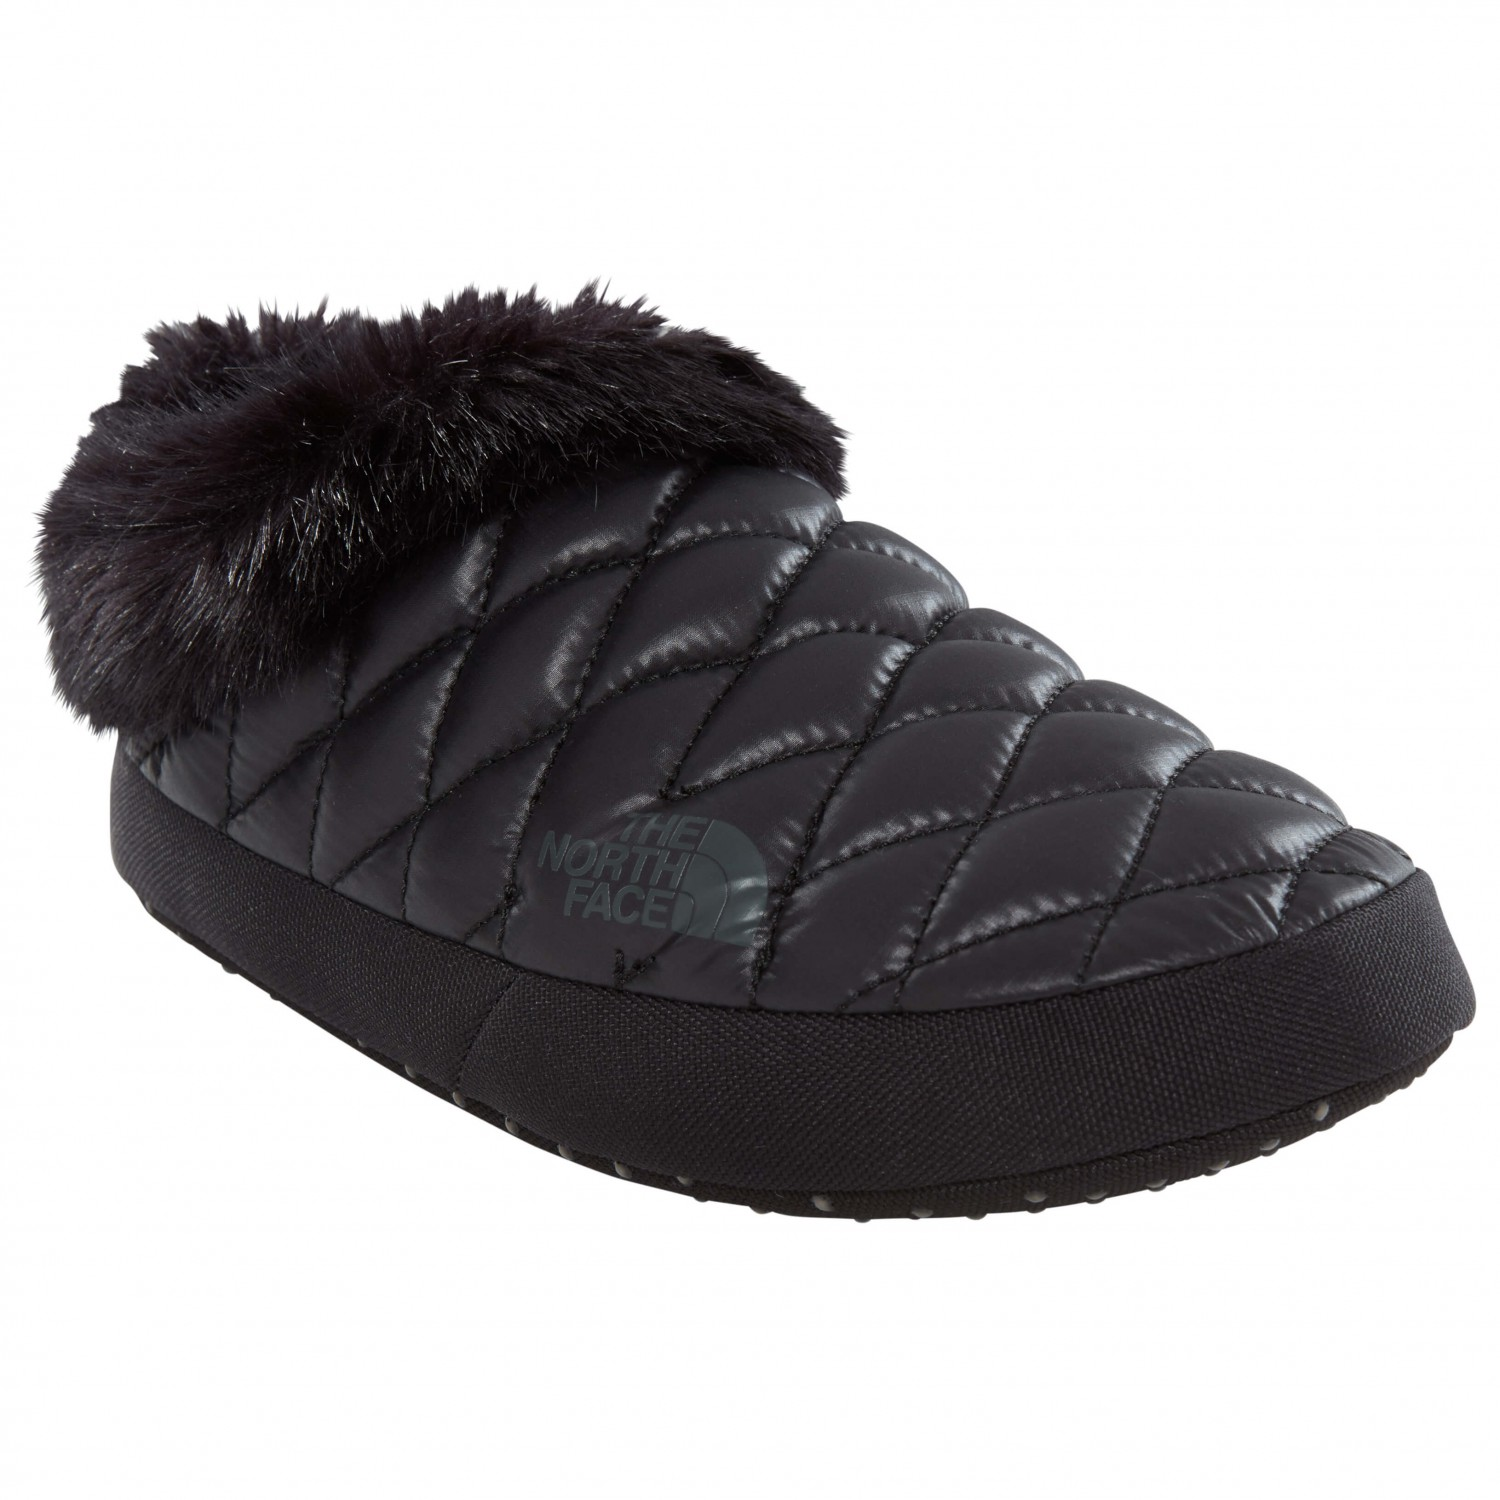 2a3b125d5 The North Face - Women's Thermoball Tent Mule Faux Fur IV - Slippers -  Shiny TNF Black / Beluga Grey | XS